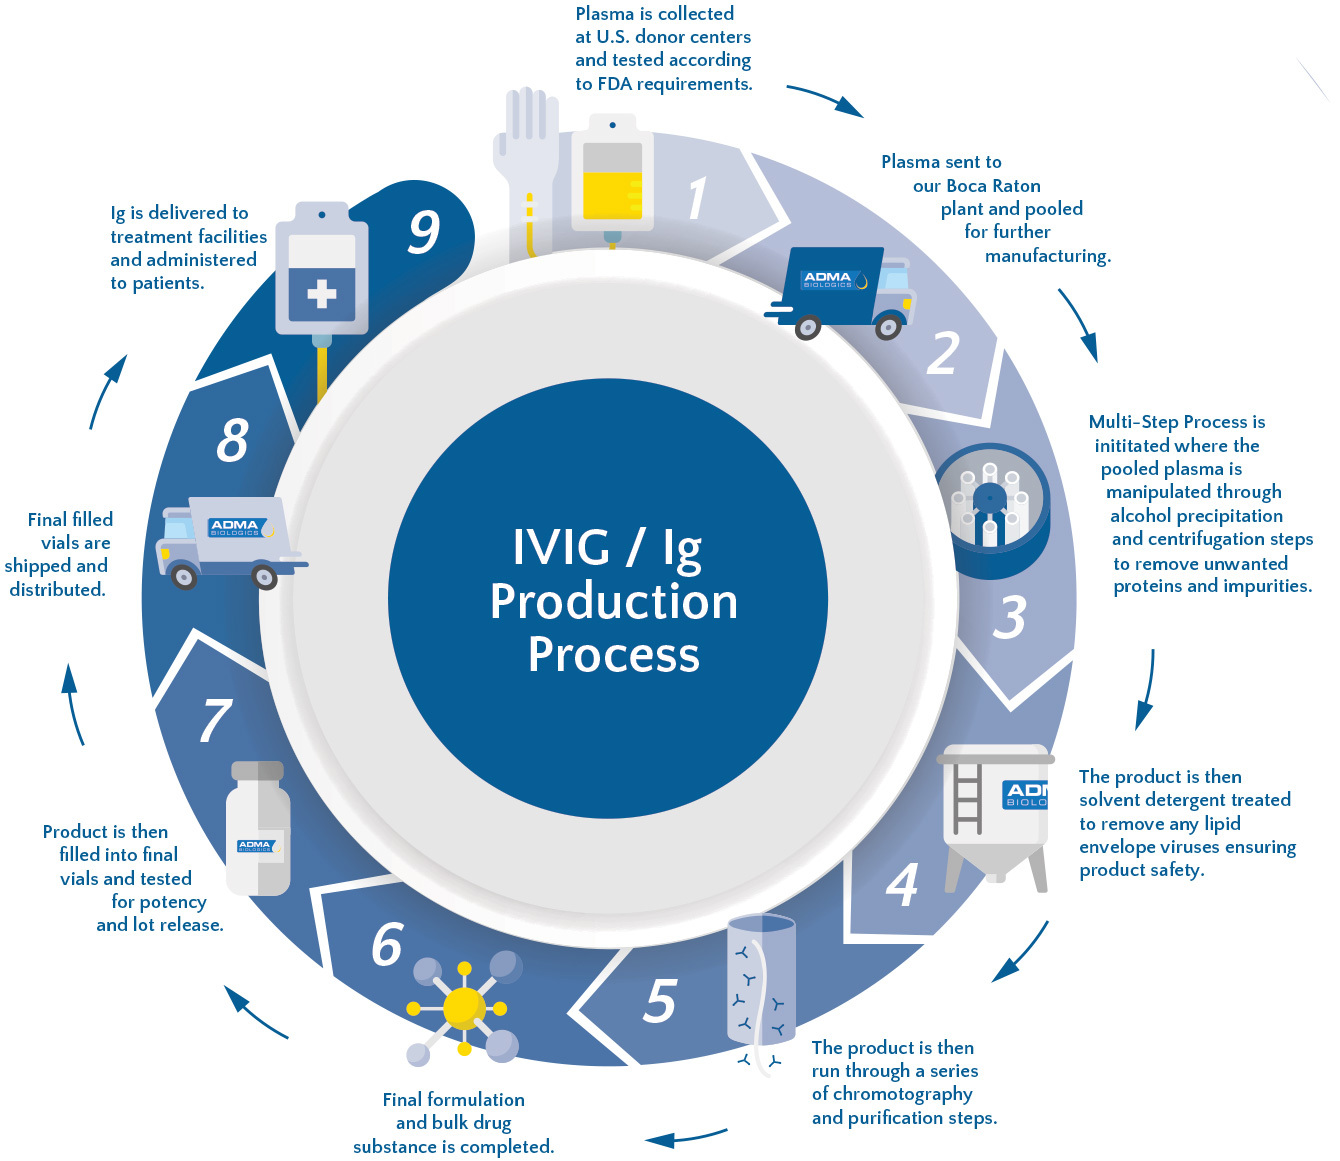 IVIG production process